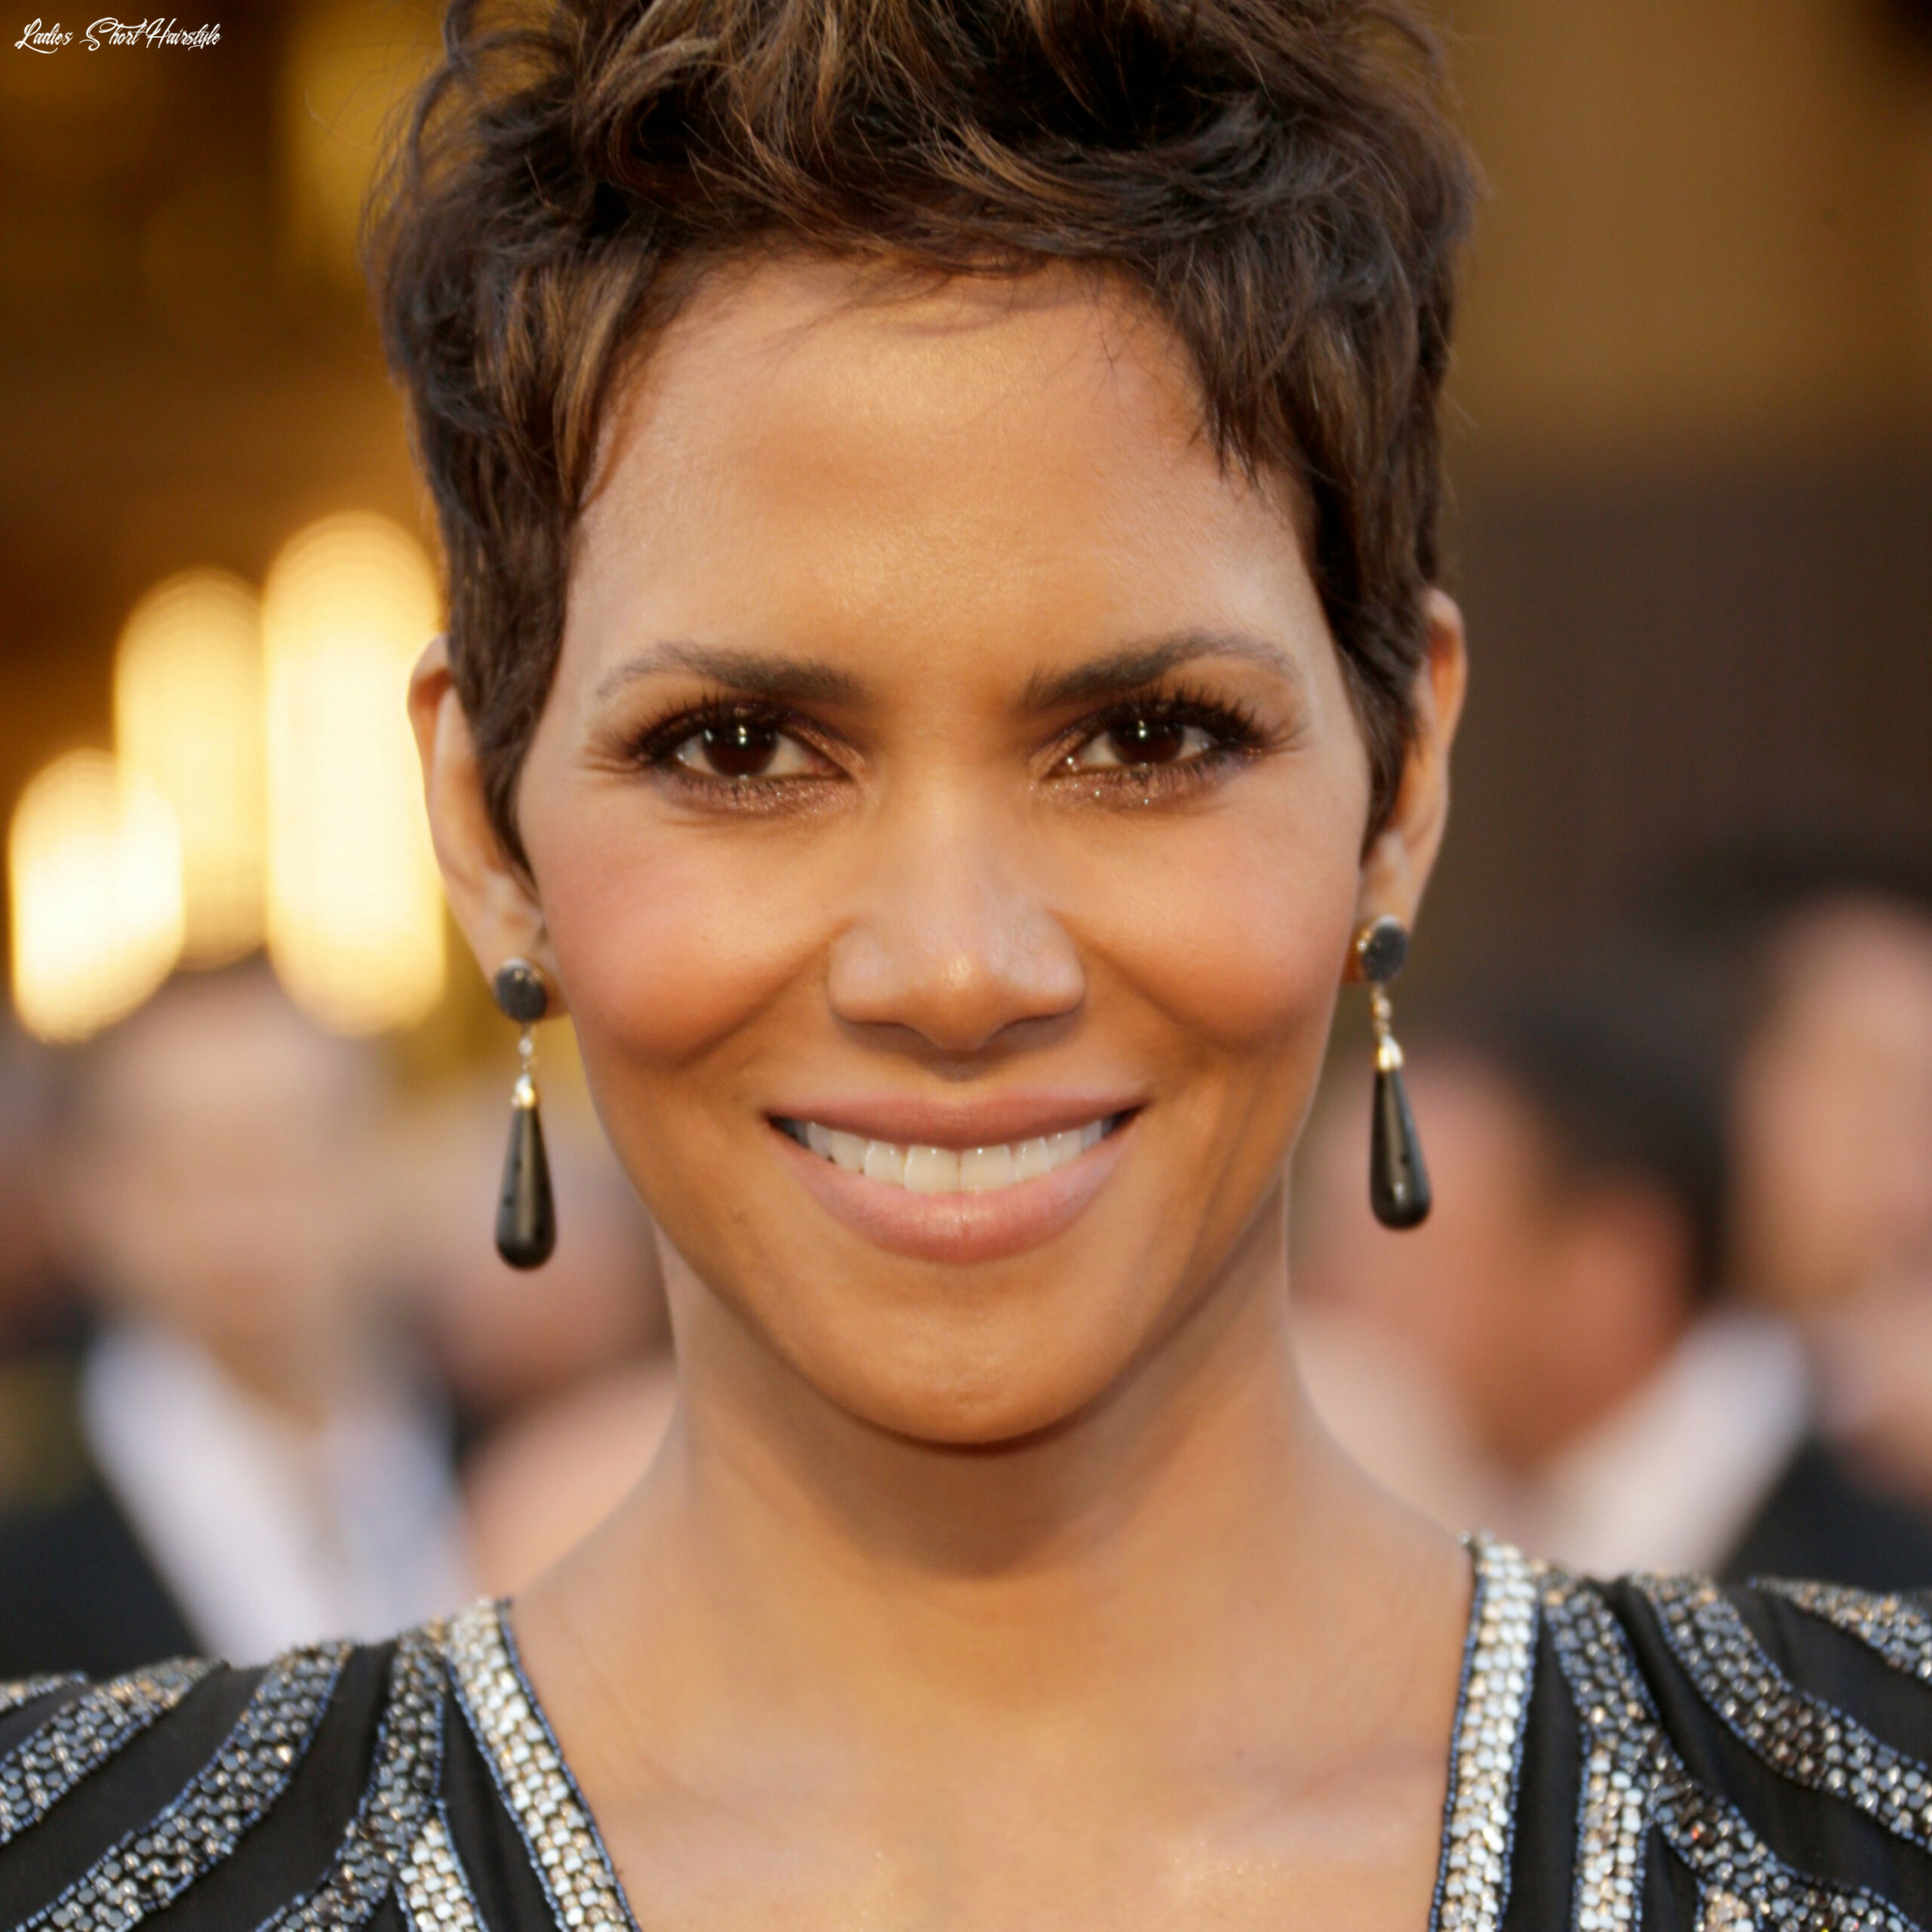 8 classic and cool short hairstyles for older women ladies short hairstyle